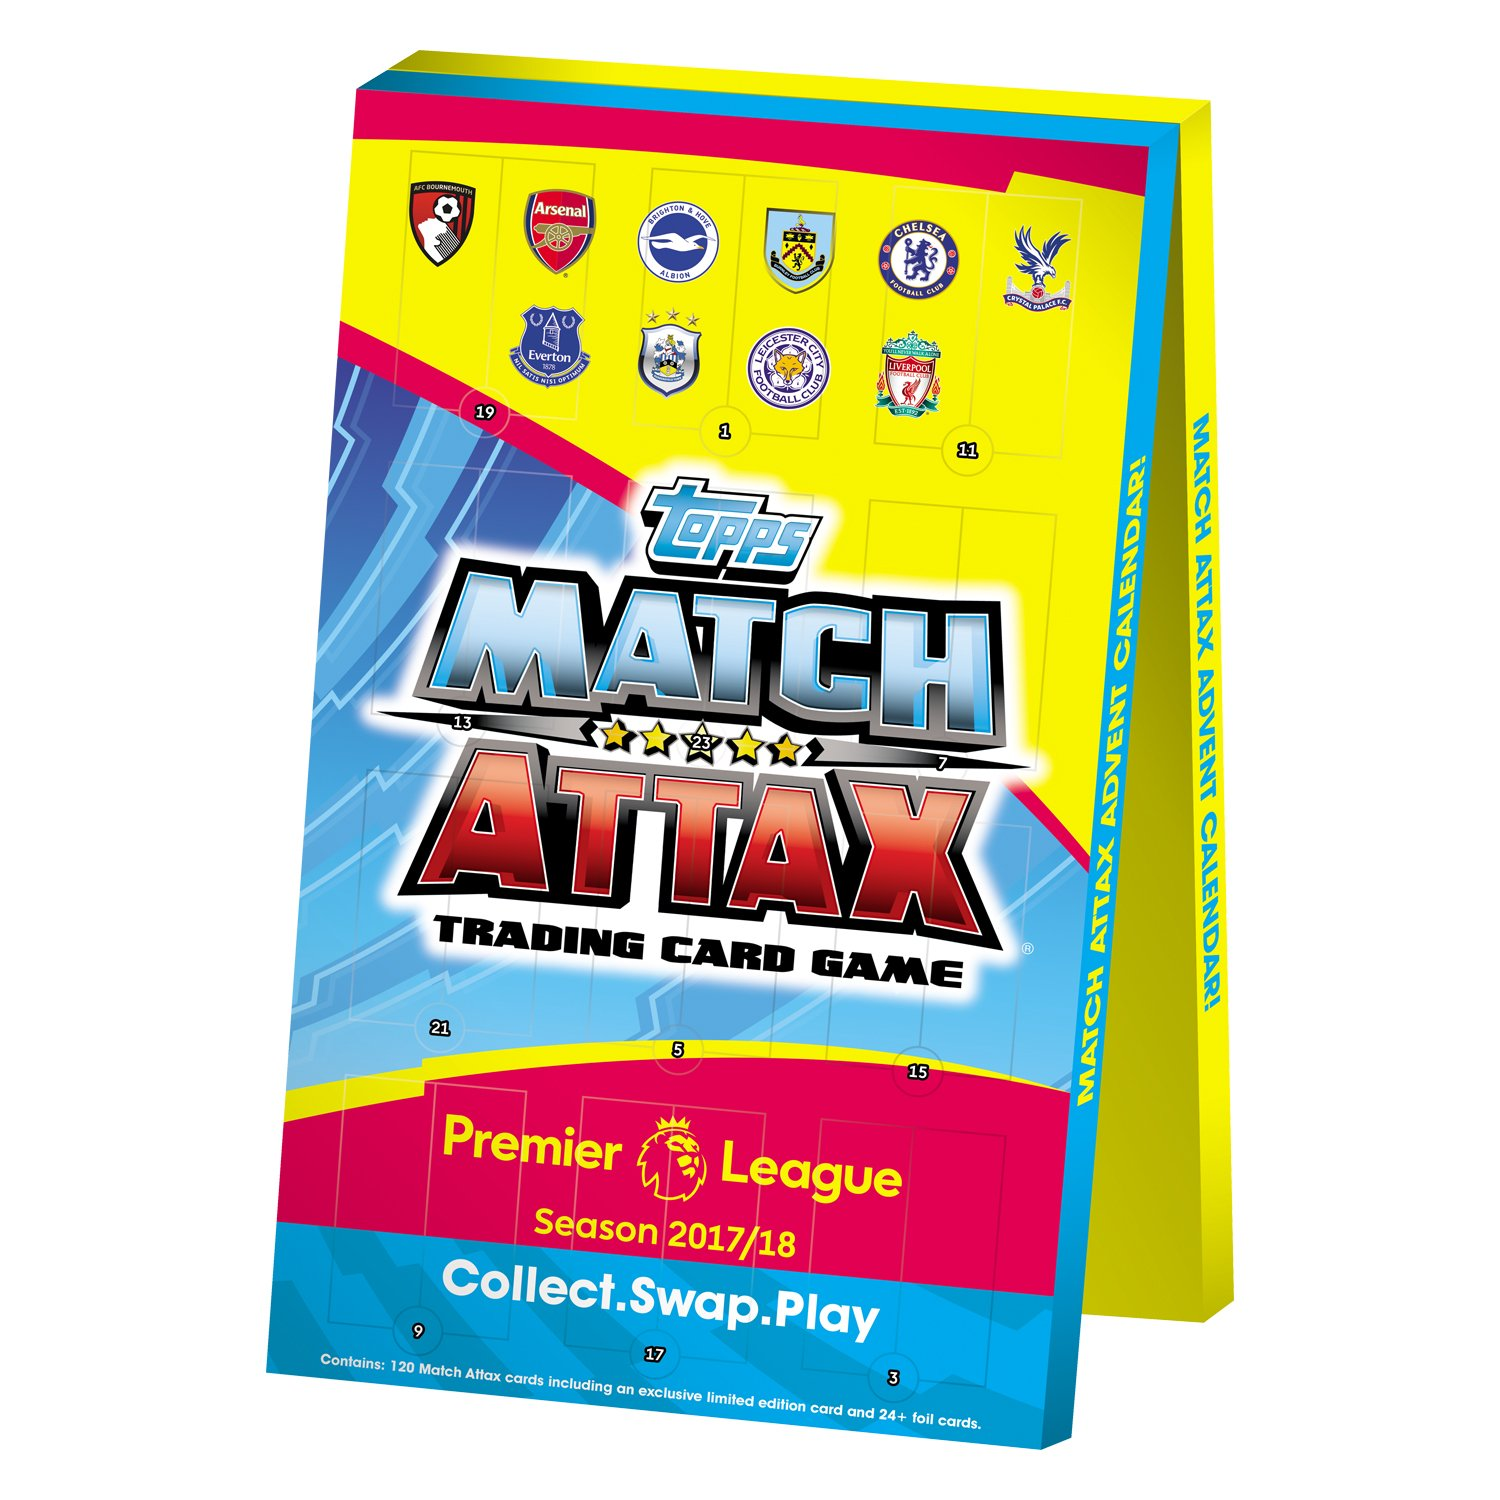 Match Attax Weihnachtskalender.Epl Match Attax 2017 18 Advent Calendar